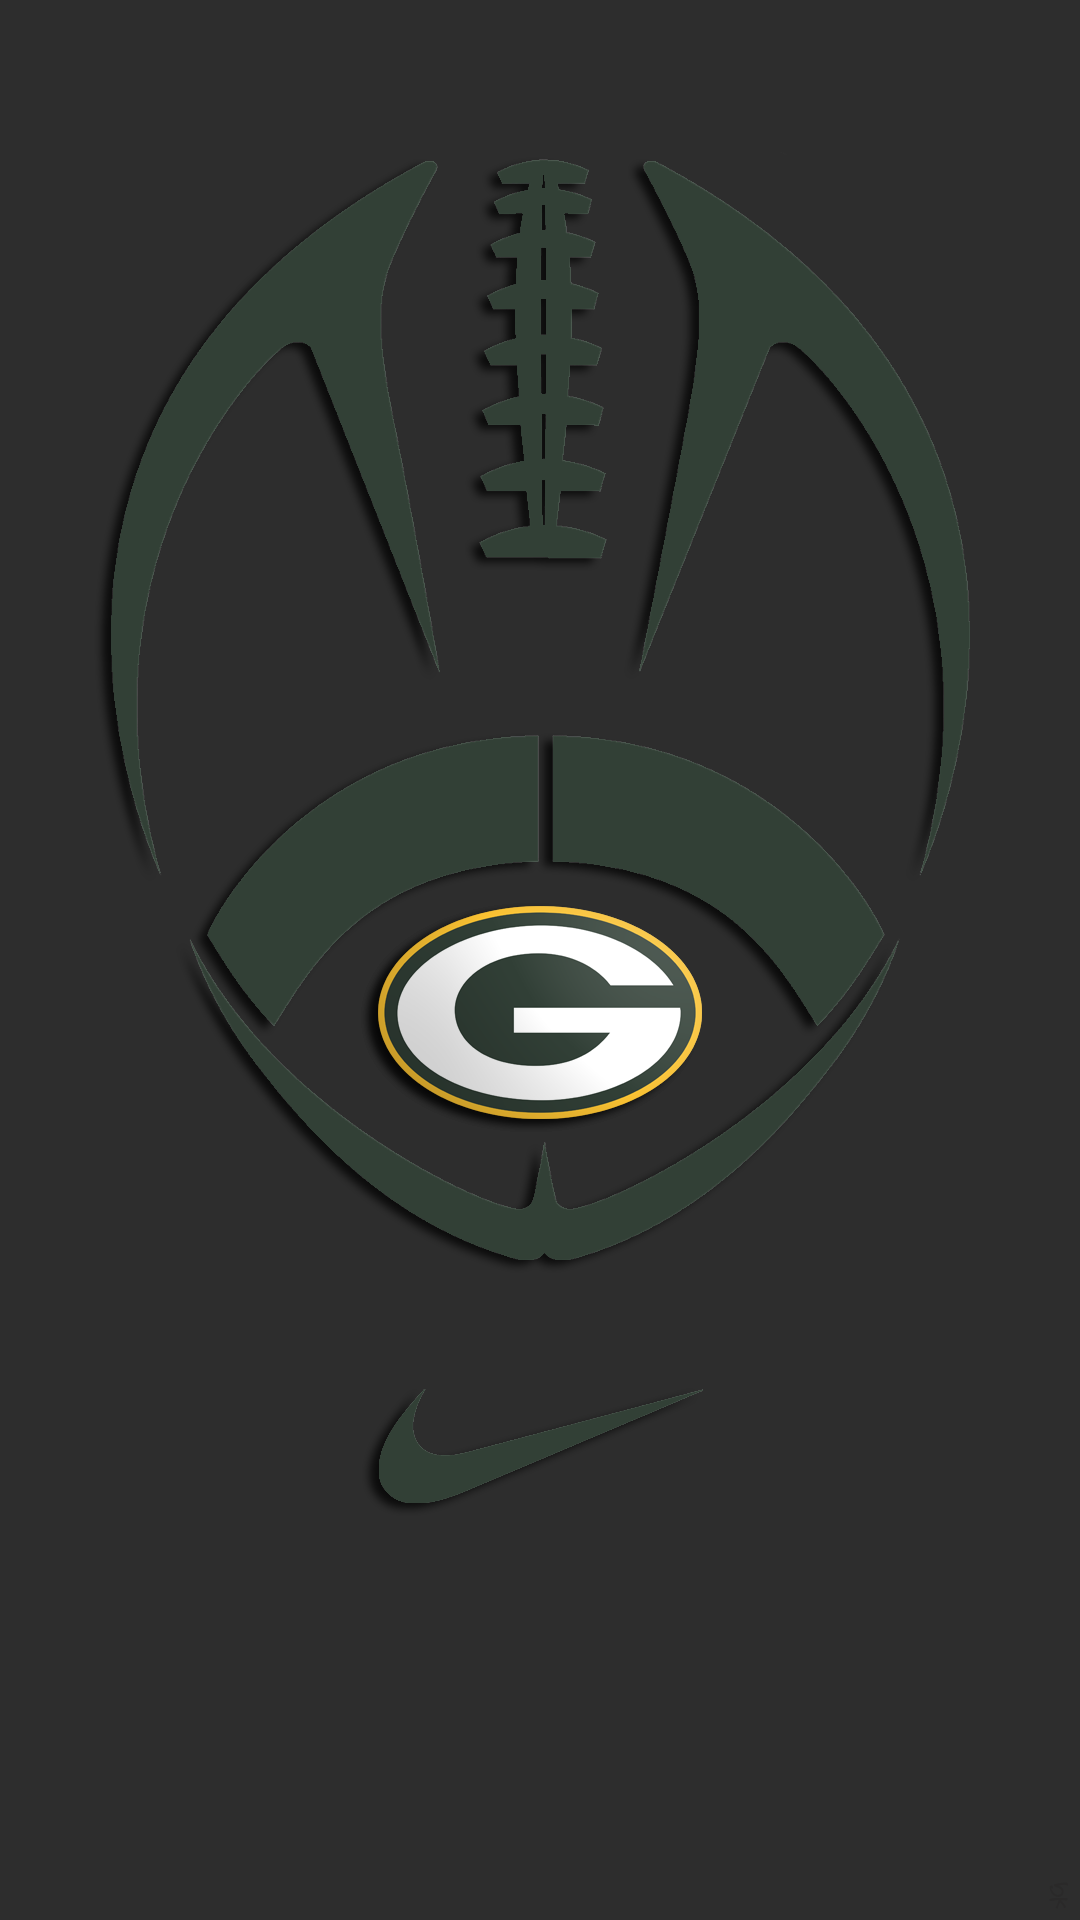 green-bay-packers-1080%C3%971920-wallpaper-wpc5805586